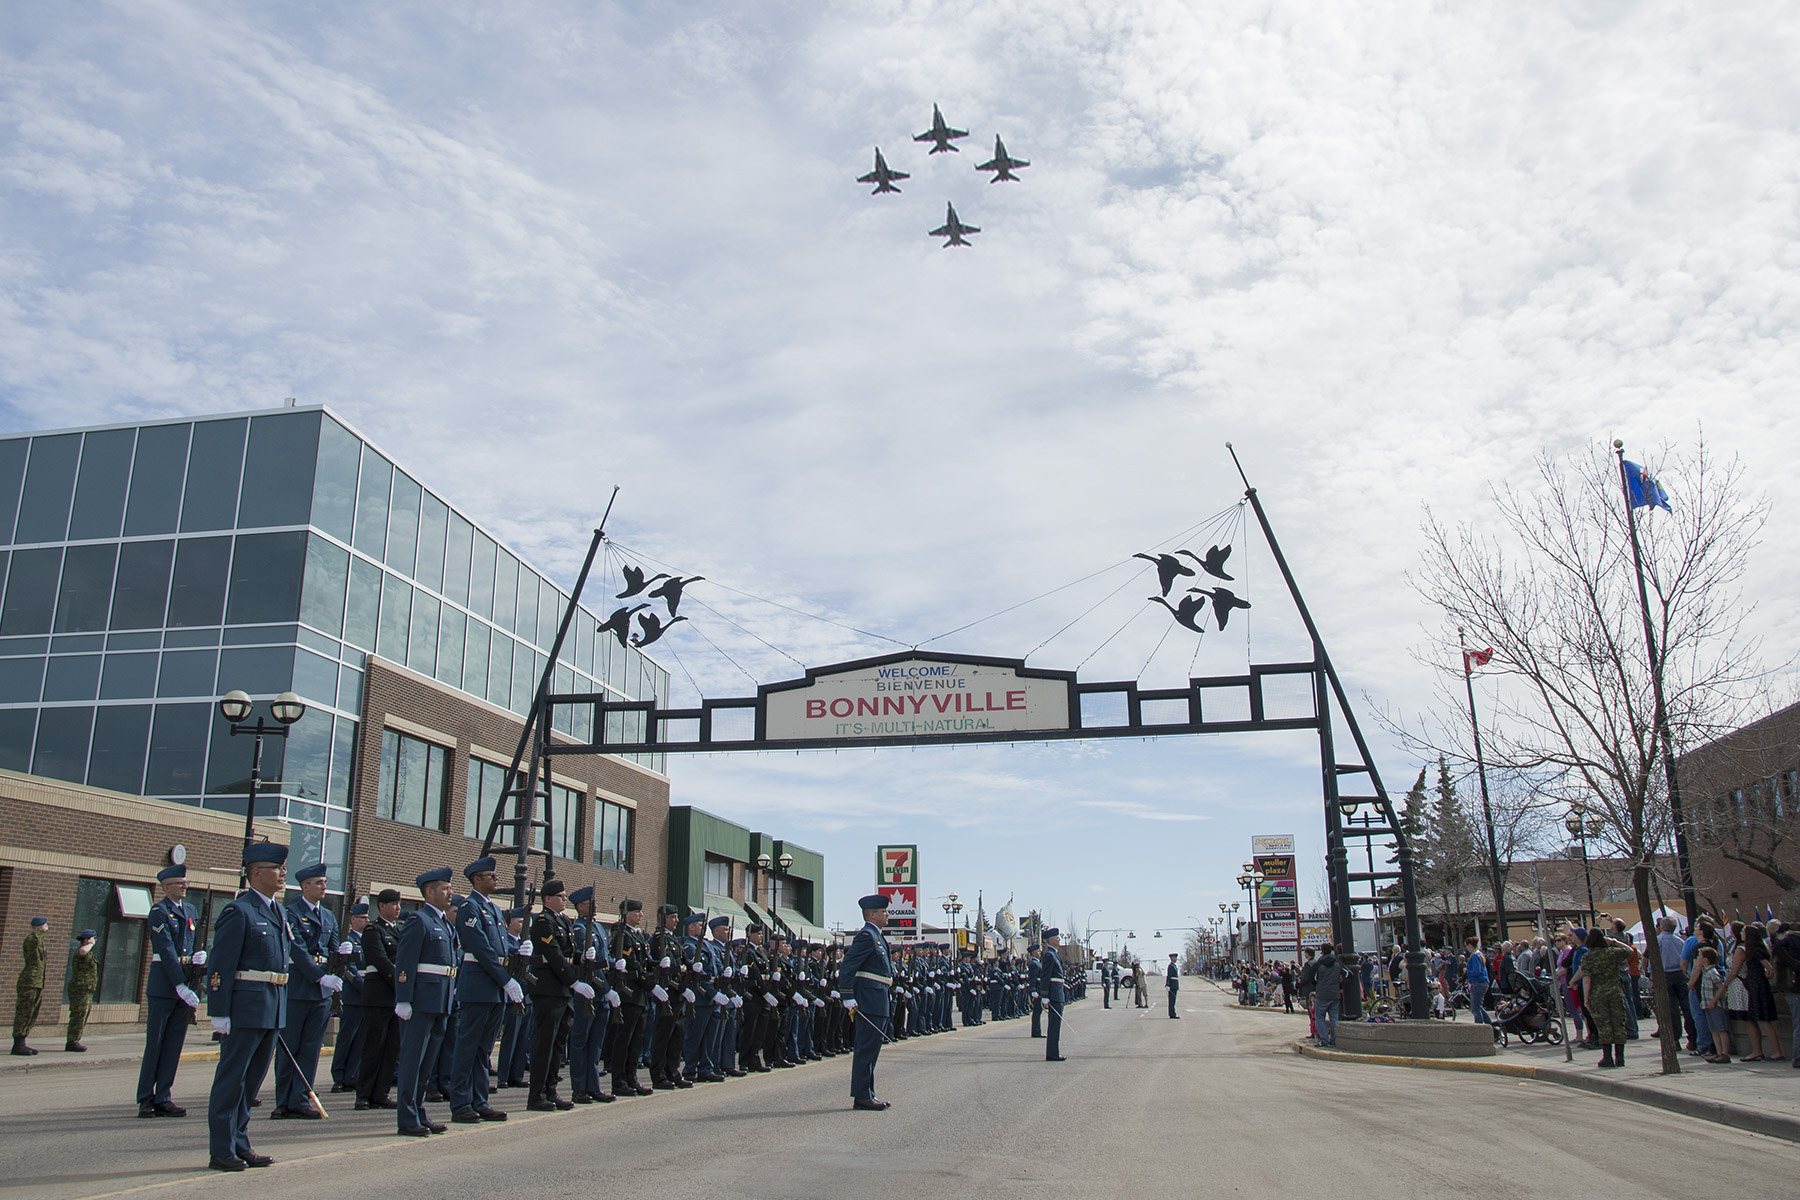 Four jet aircraft overfly three long lines of people in blue or black uniforms facing an equally long line of people in civilian dress across a business street of a town.